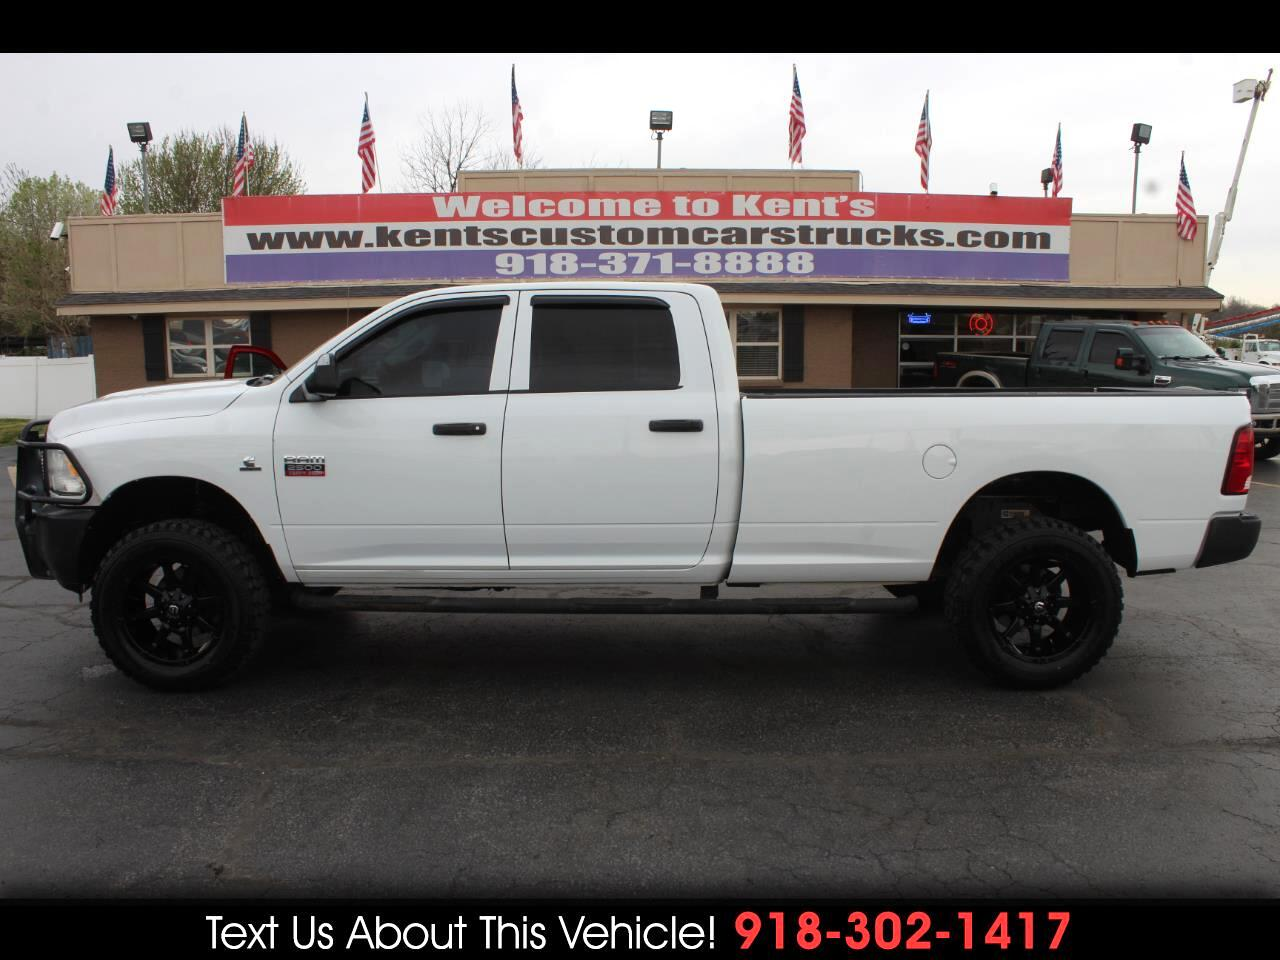 2012 Ram Truck Ram 2500 ST Crew Cab 4WD 8 ft. Long Bed